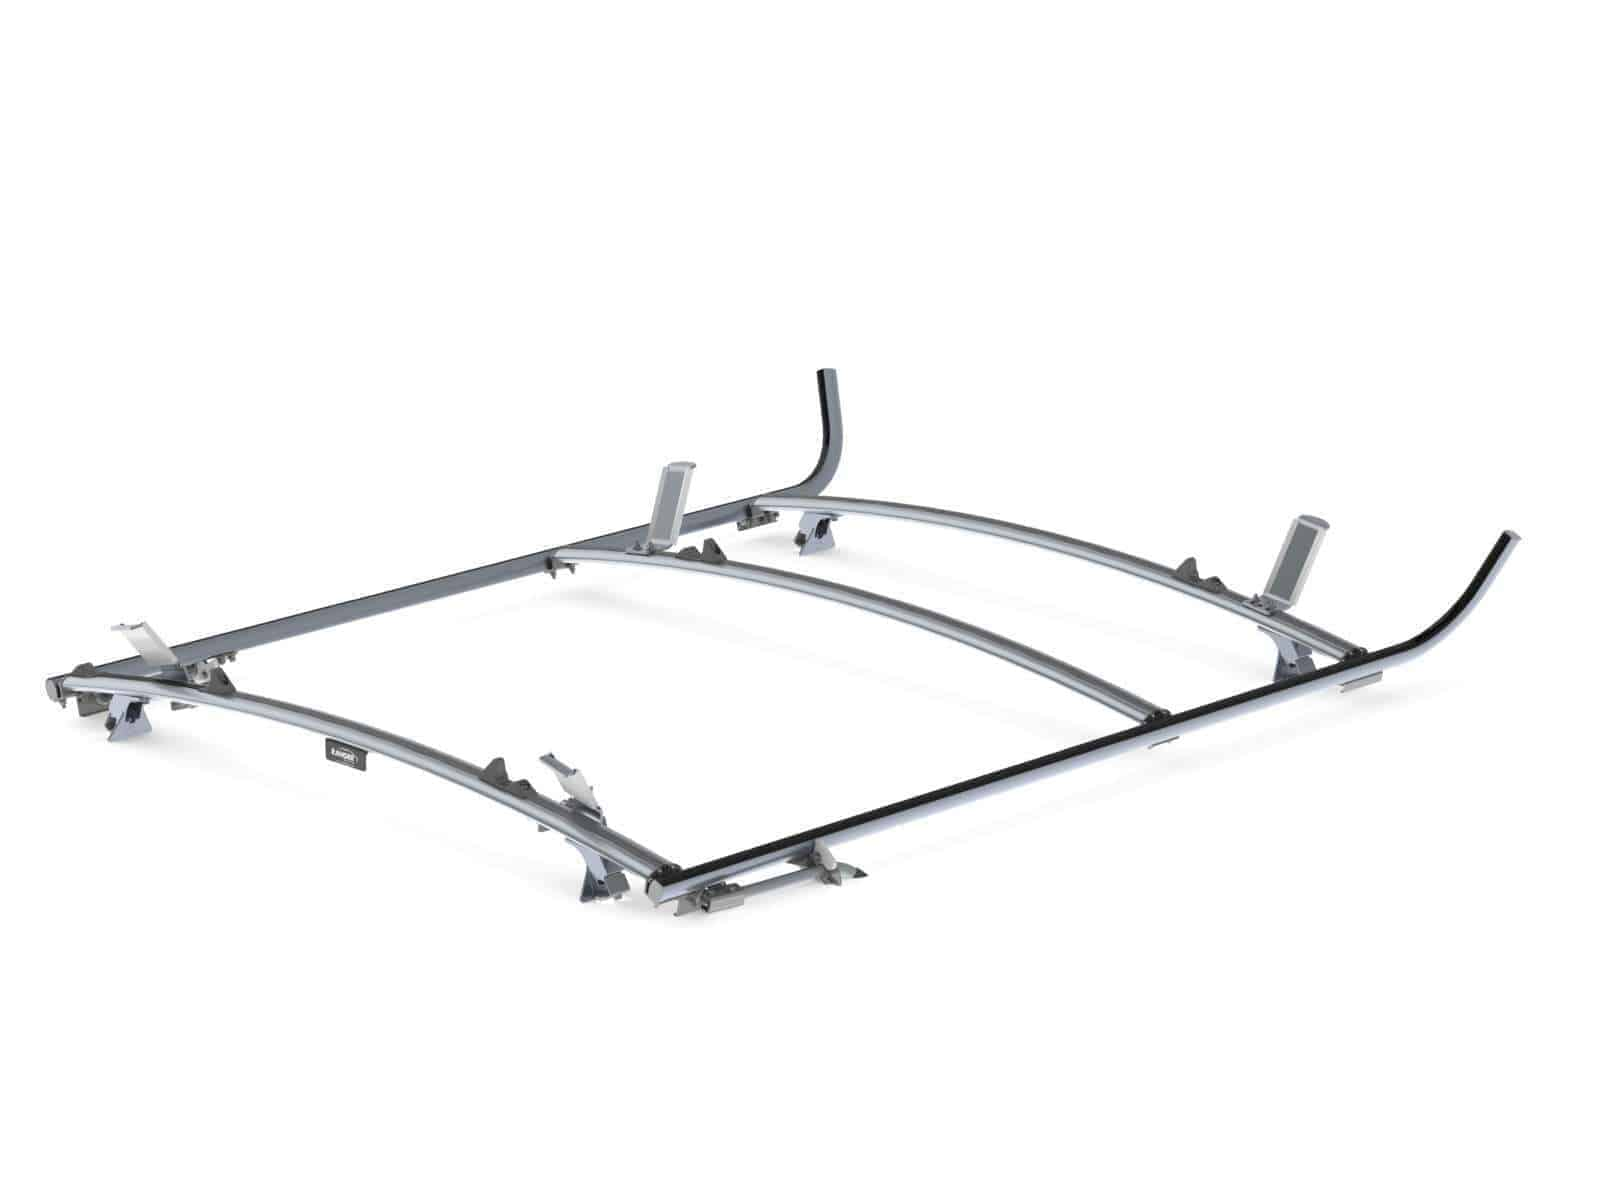 Combination Ladder Rack, Aluminum, 2 Bar, GM/Ford Full